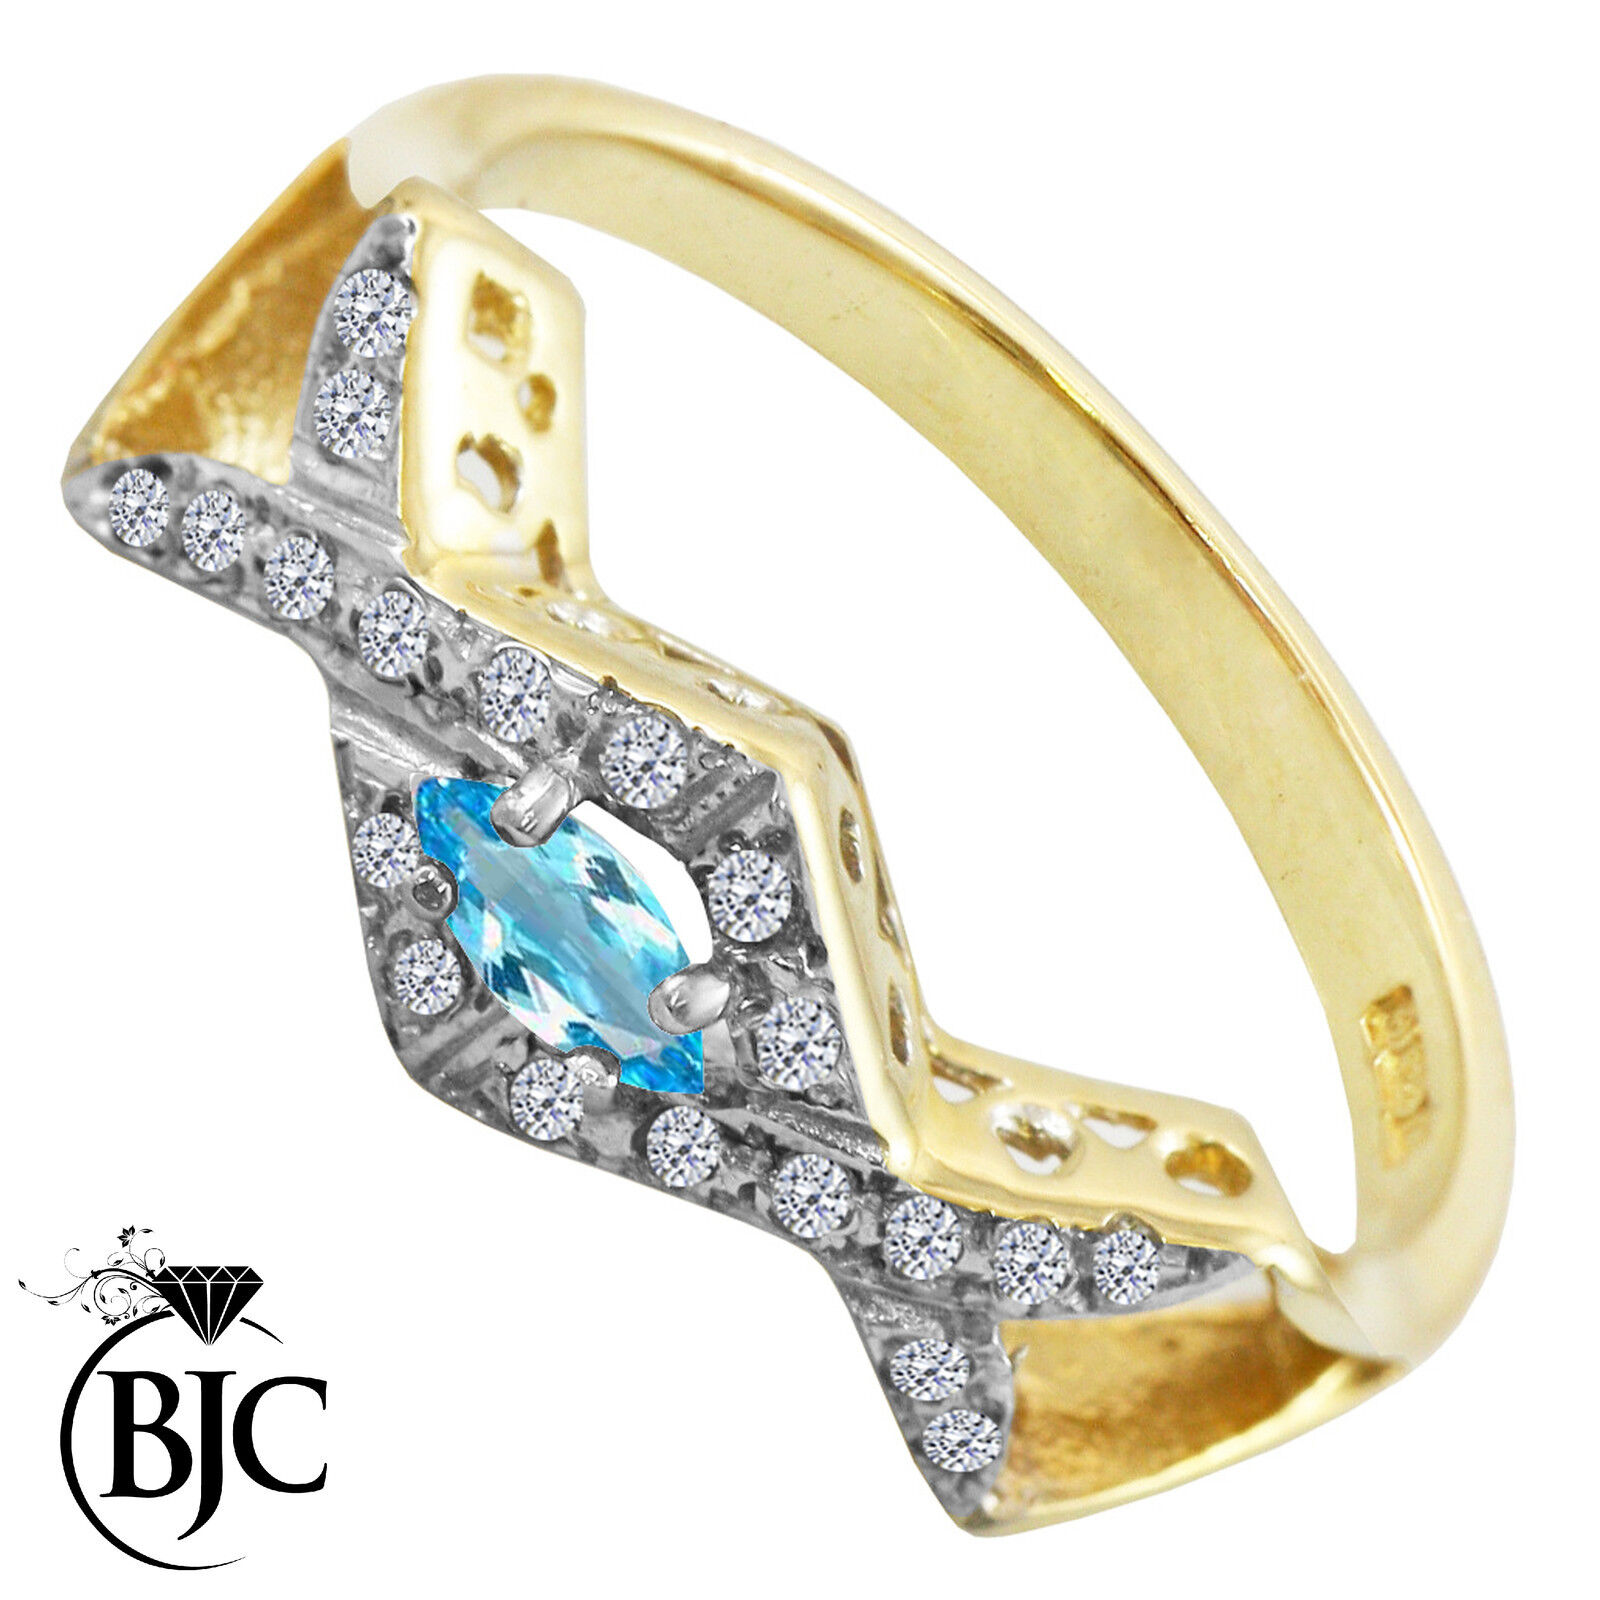 BJC® 9ct Yellow gold bluee Topaz & Diamond Cross Over size O engagement ring R200